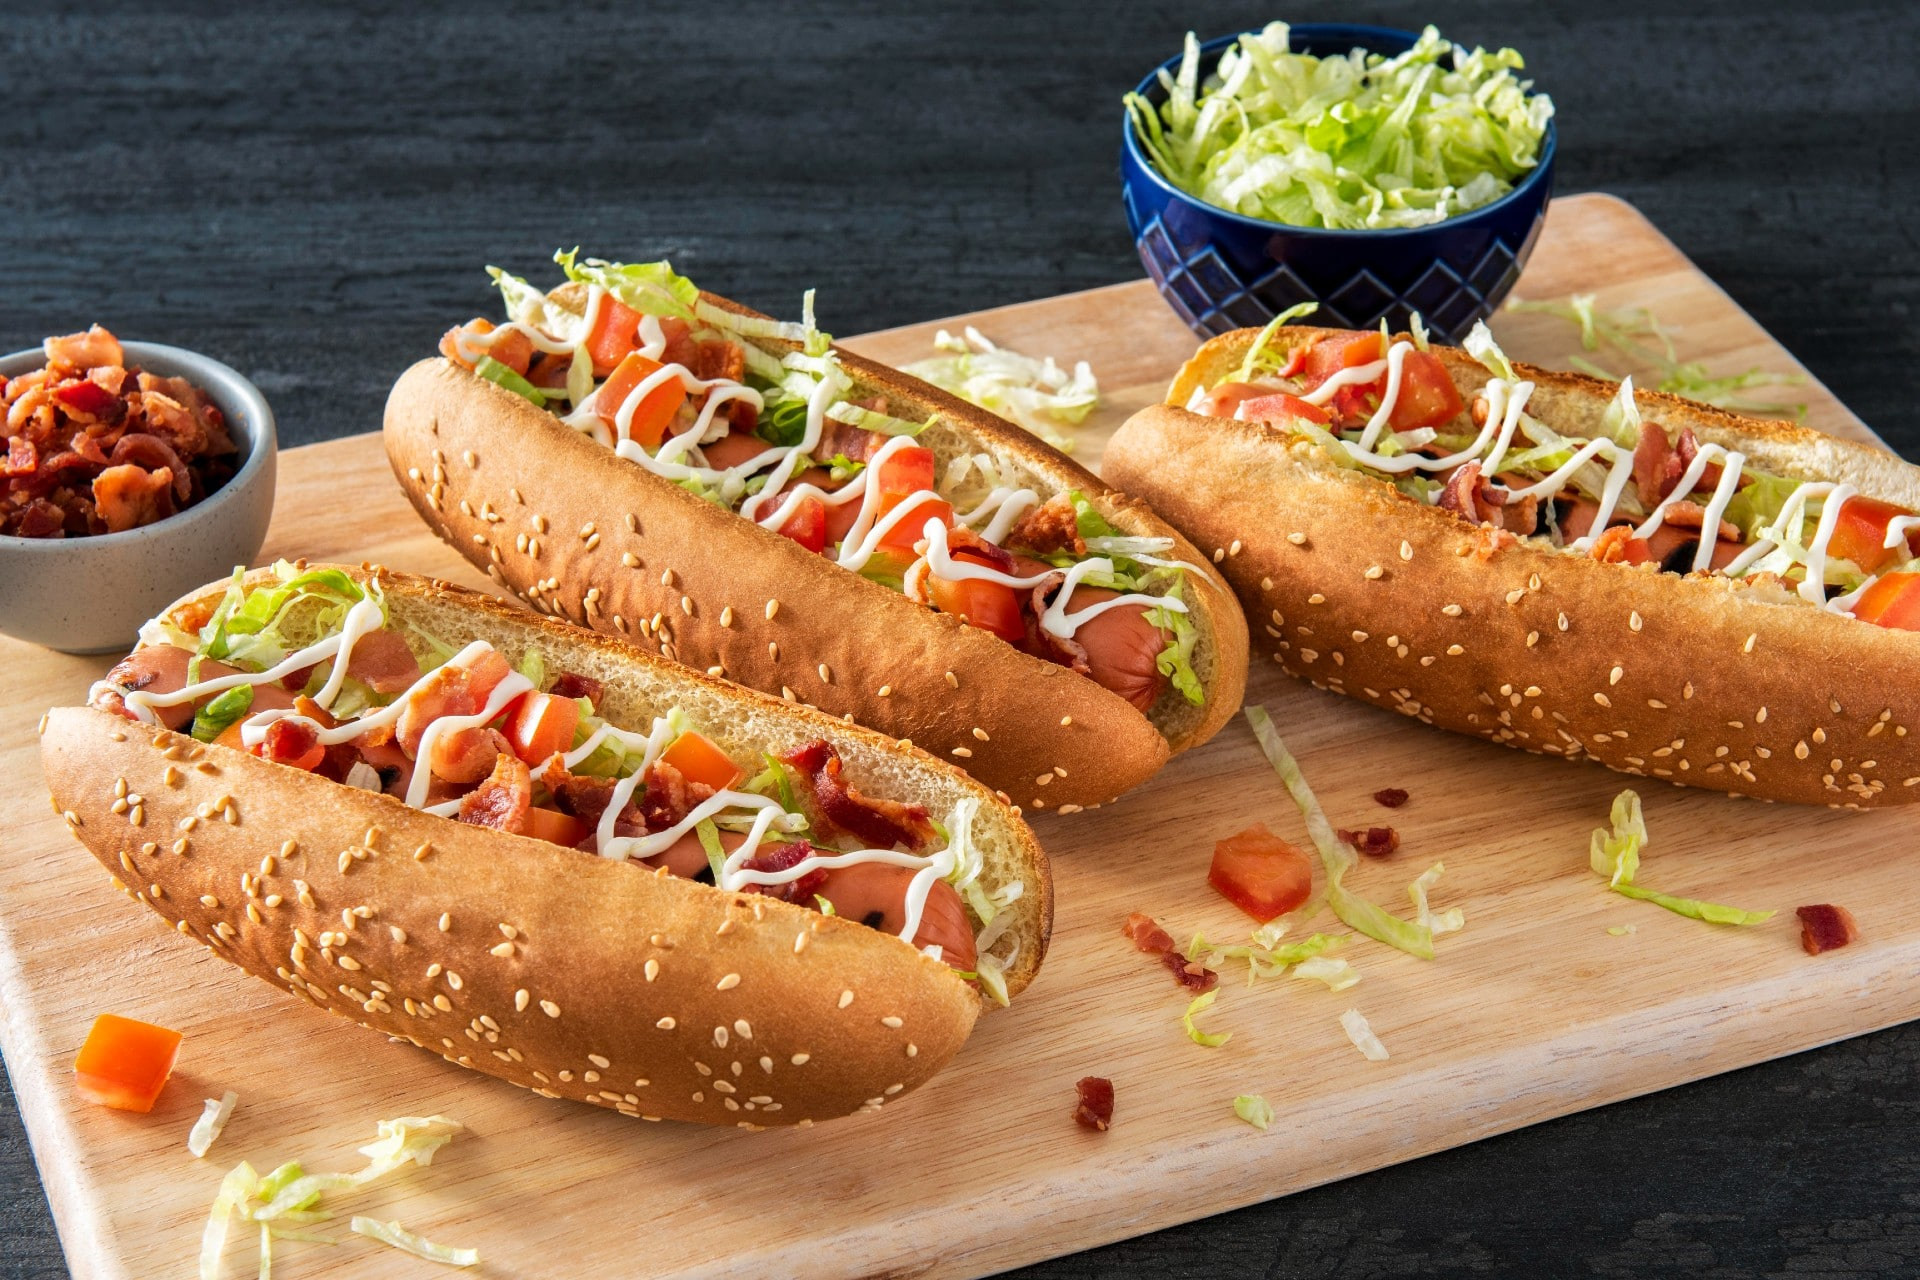 board with hot dogs topped with shredded lettuce, tomatoes and bacon